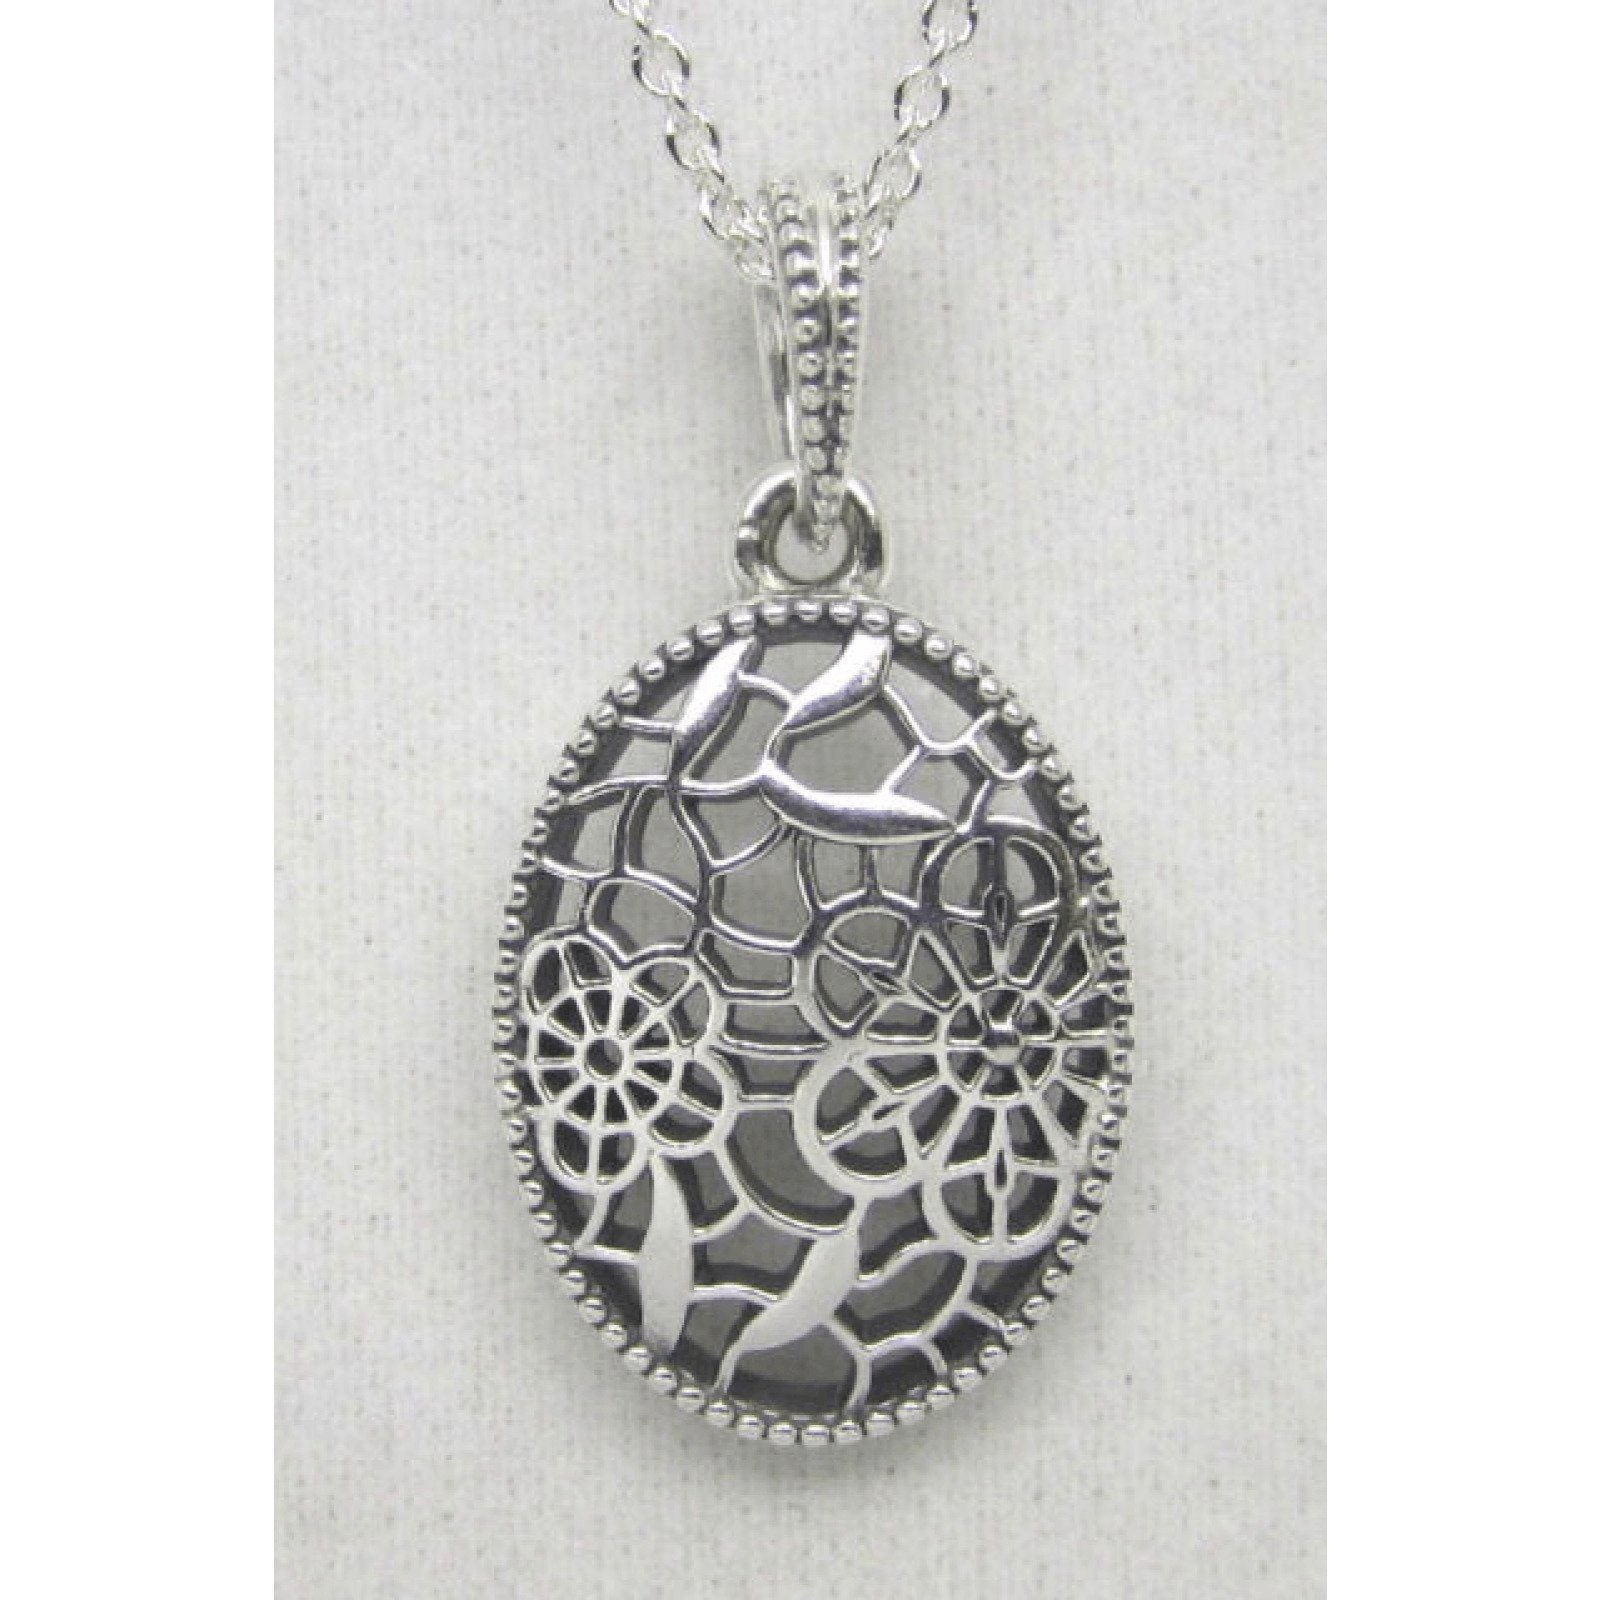 715ffa4a8 Pandora Floral Daisy Lace Pendant in Sterling Silver Charms & Pendants  Pandora